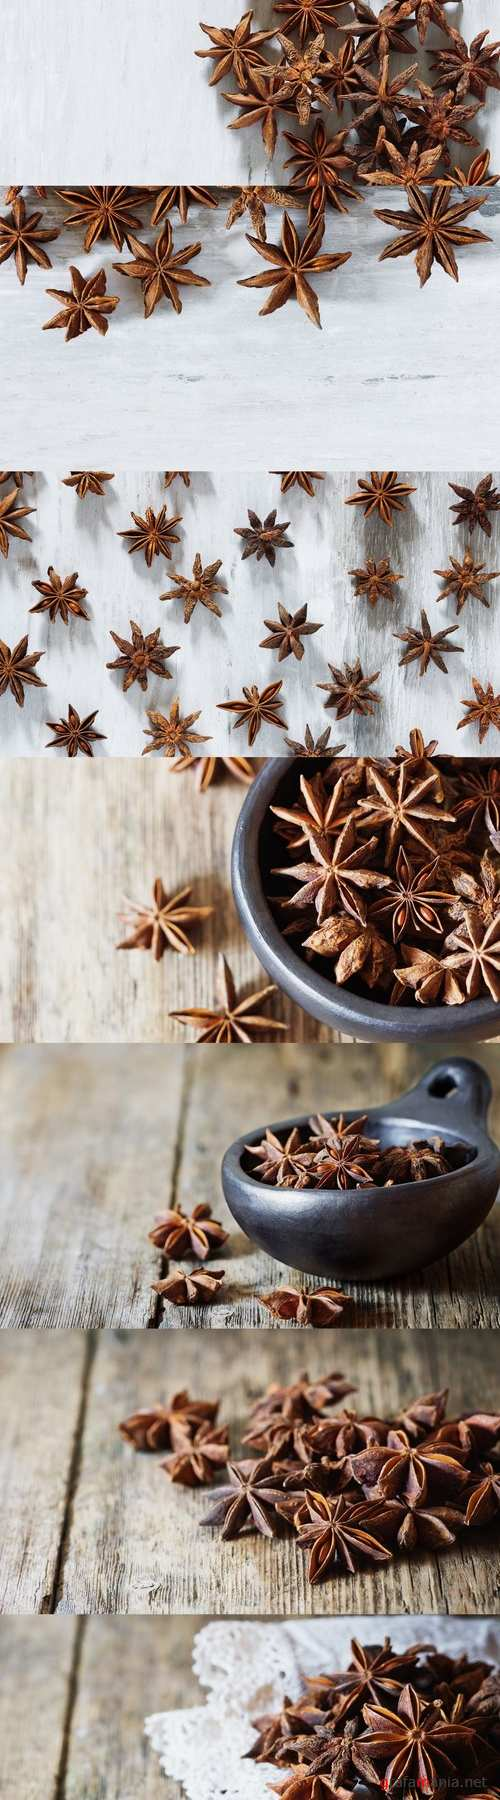 Star anise spice and fruit seeds